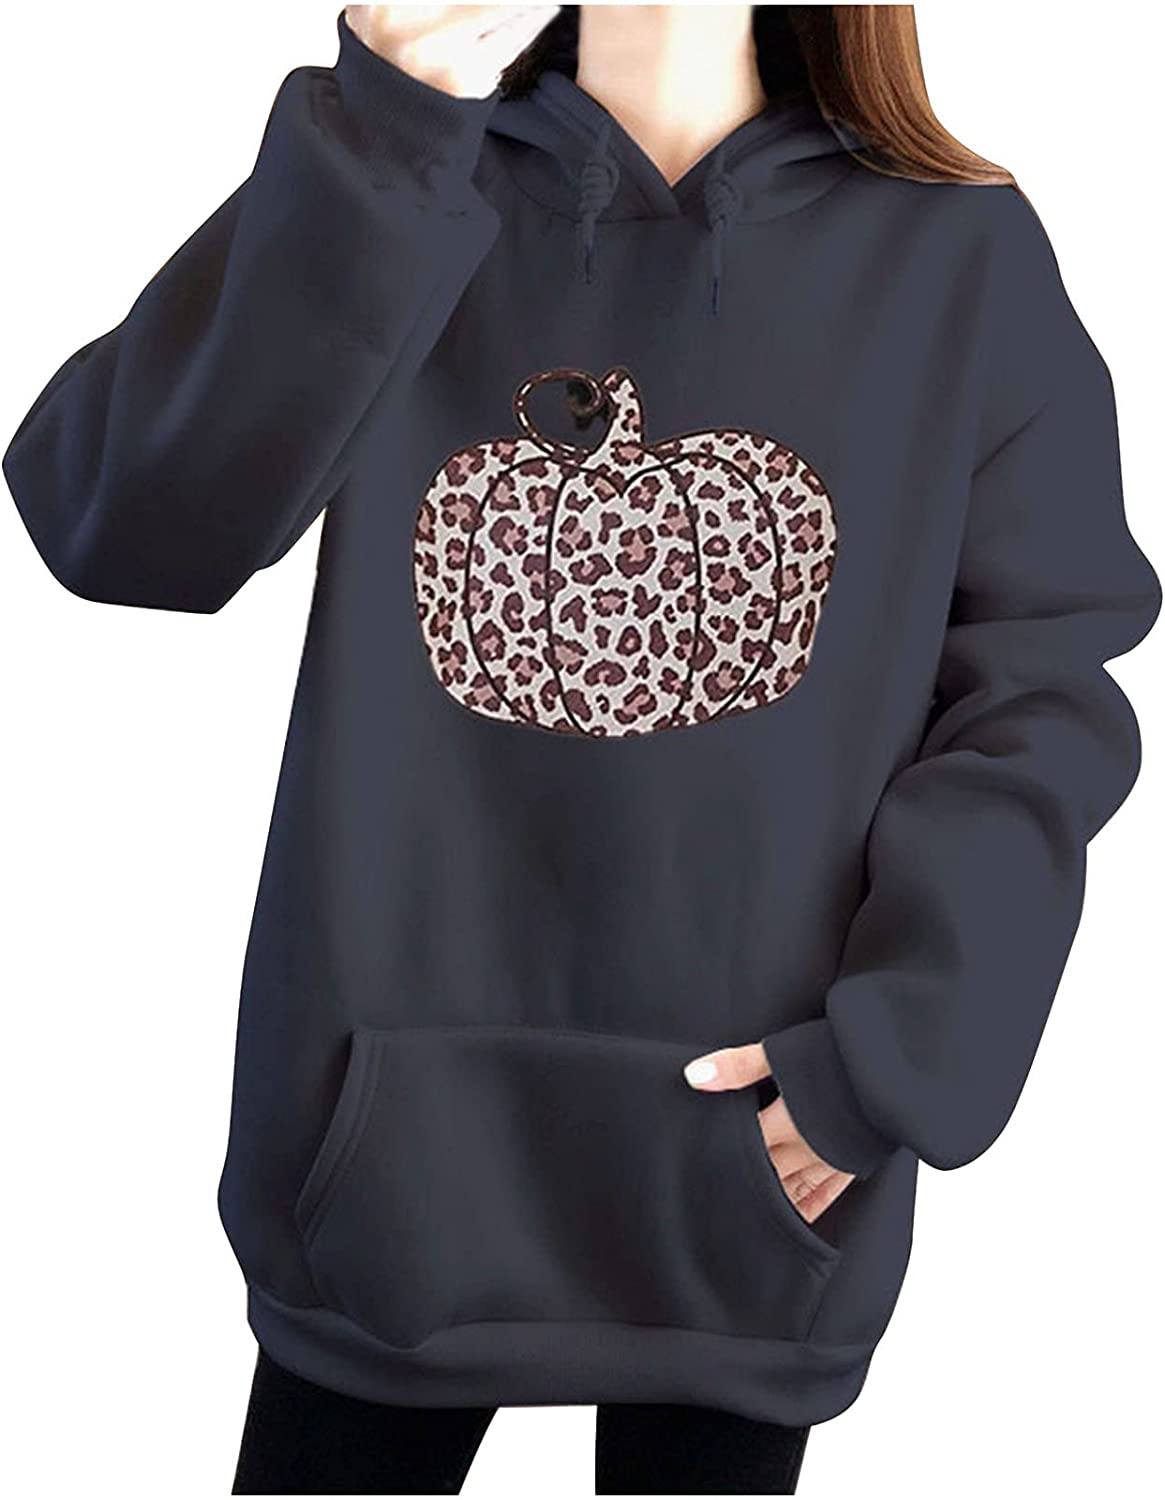 Store Women's Halloween Hooded Sweatshirts Solid Color Fashion El Paso Mall Casual